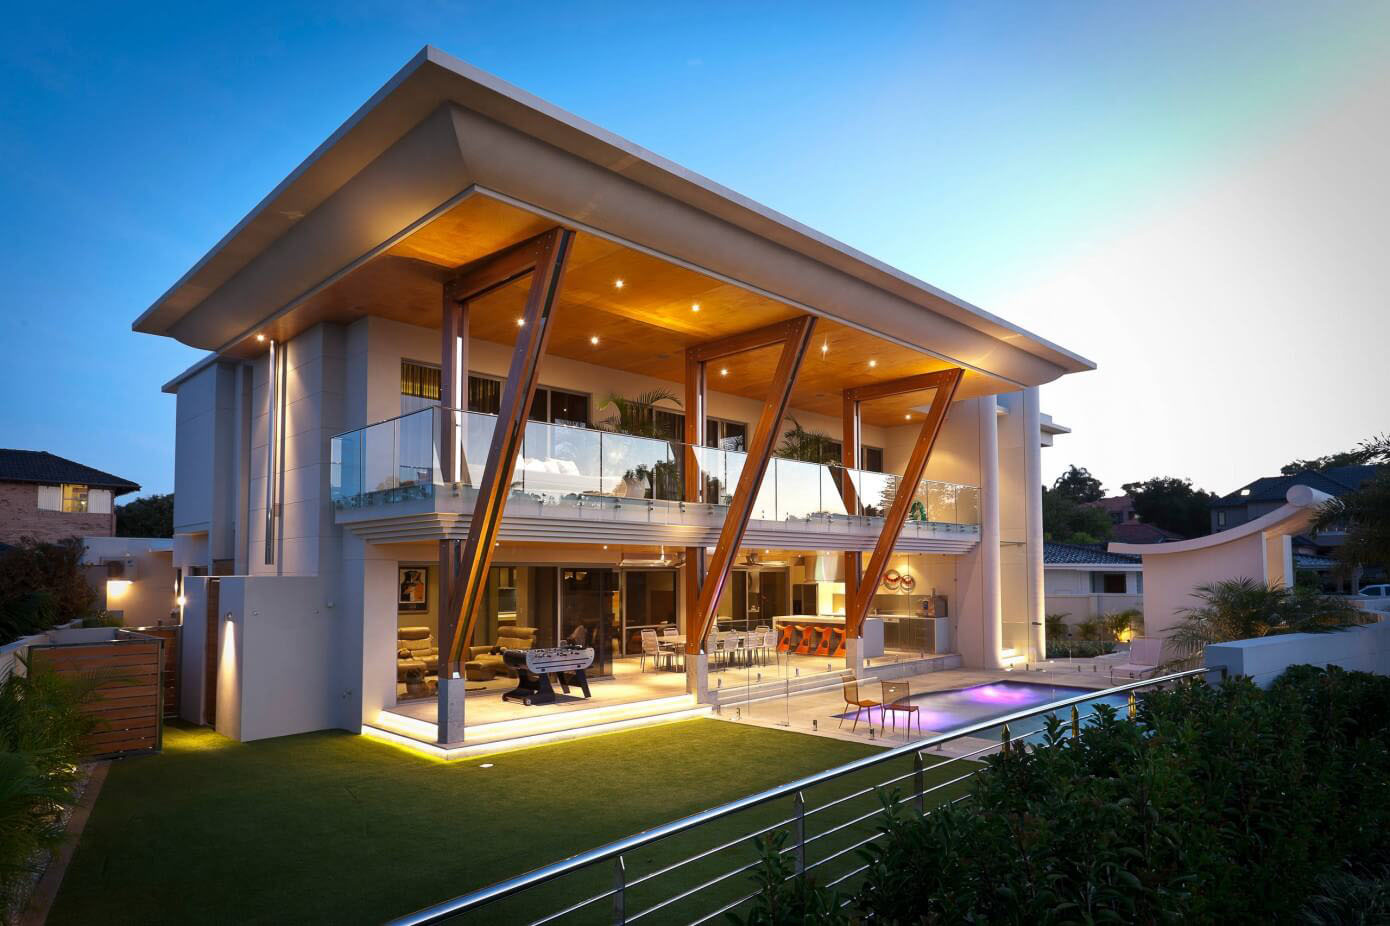 Ultra modern home in perth with large roof idesignarch for Modern architecture homes